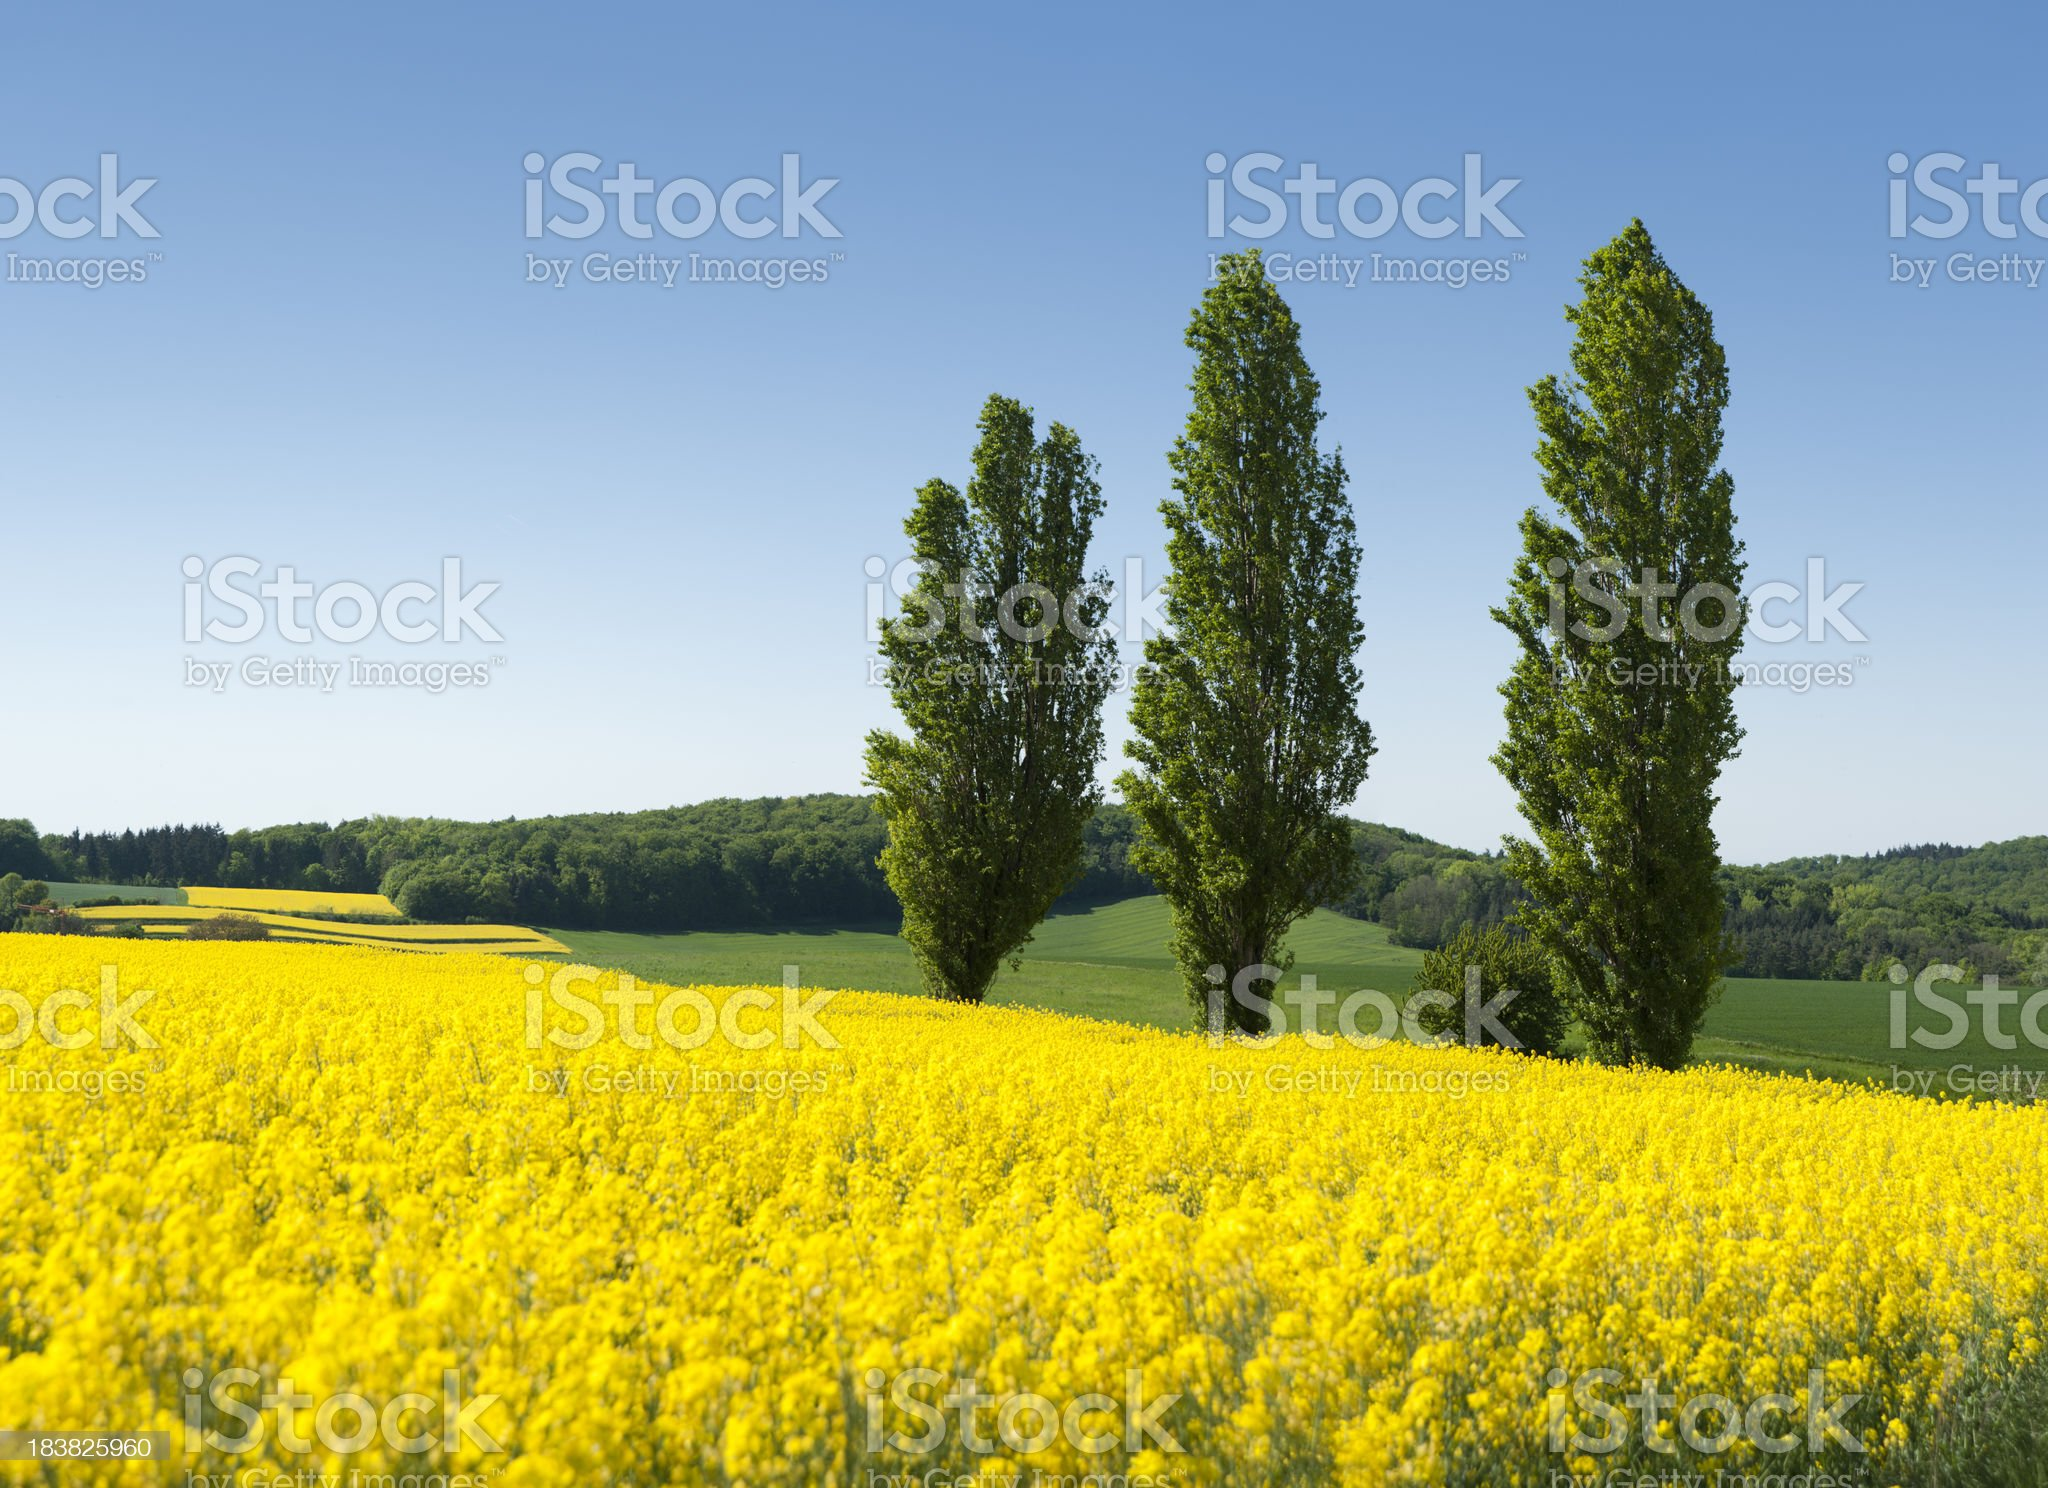 Field of oilseed rape canola  (image size XXXL) royalty-free stock photo